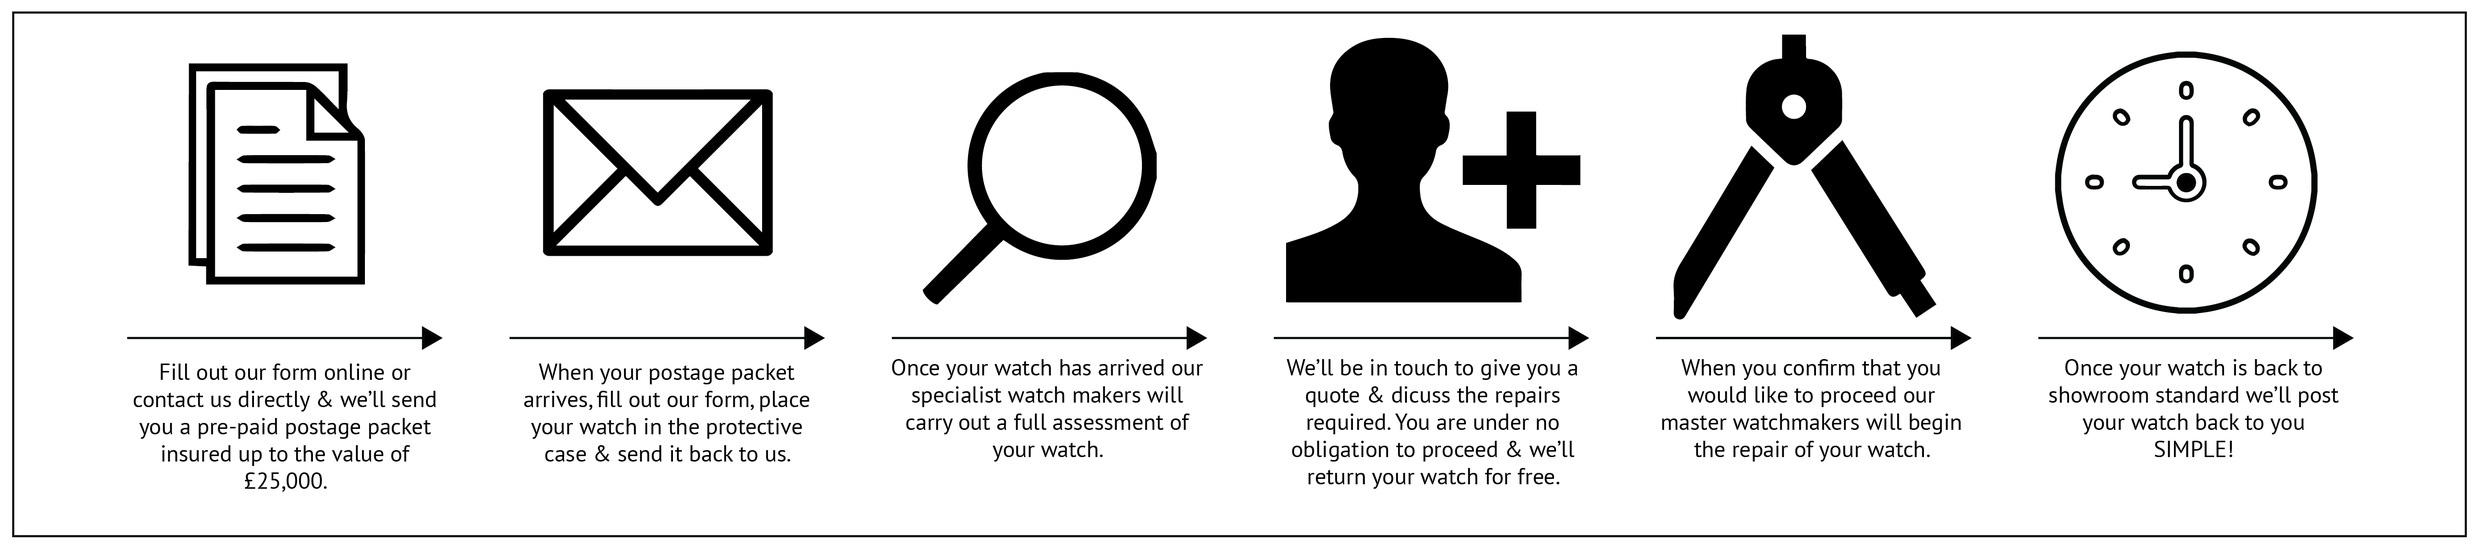 Bring your watch back to showroom standard with AMJ Watch Services. Order your pre-paid postage packet today.